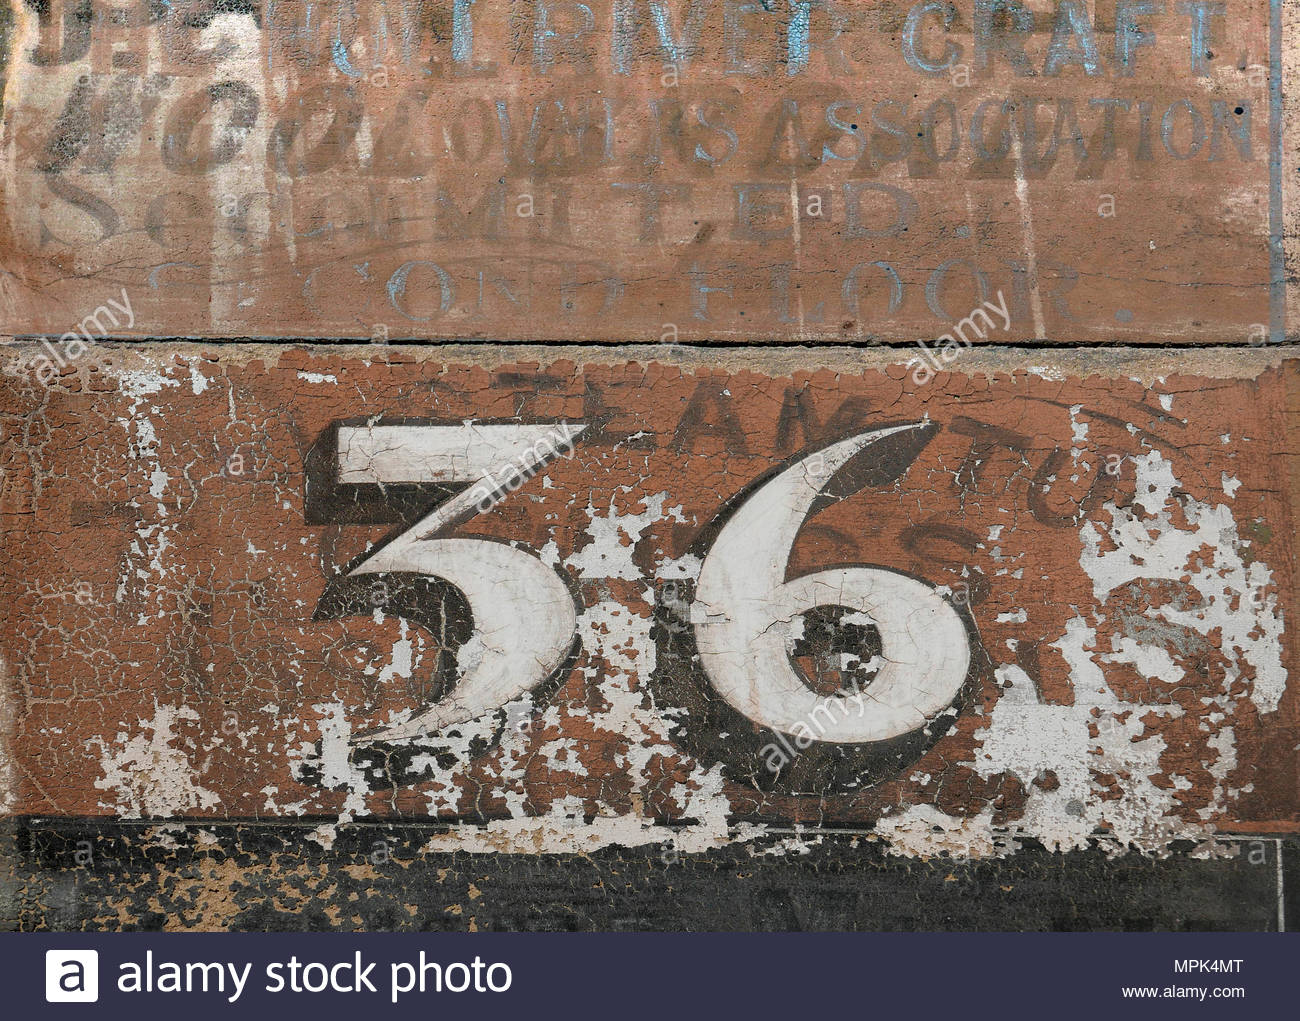 The Number 36 Painted Over Previous Worn And Eroded Lettering On Stone Door  Frame